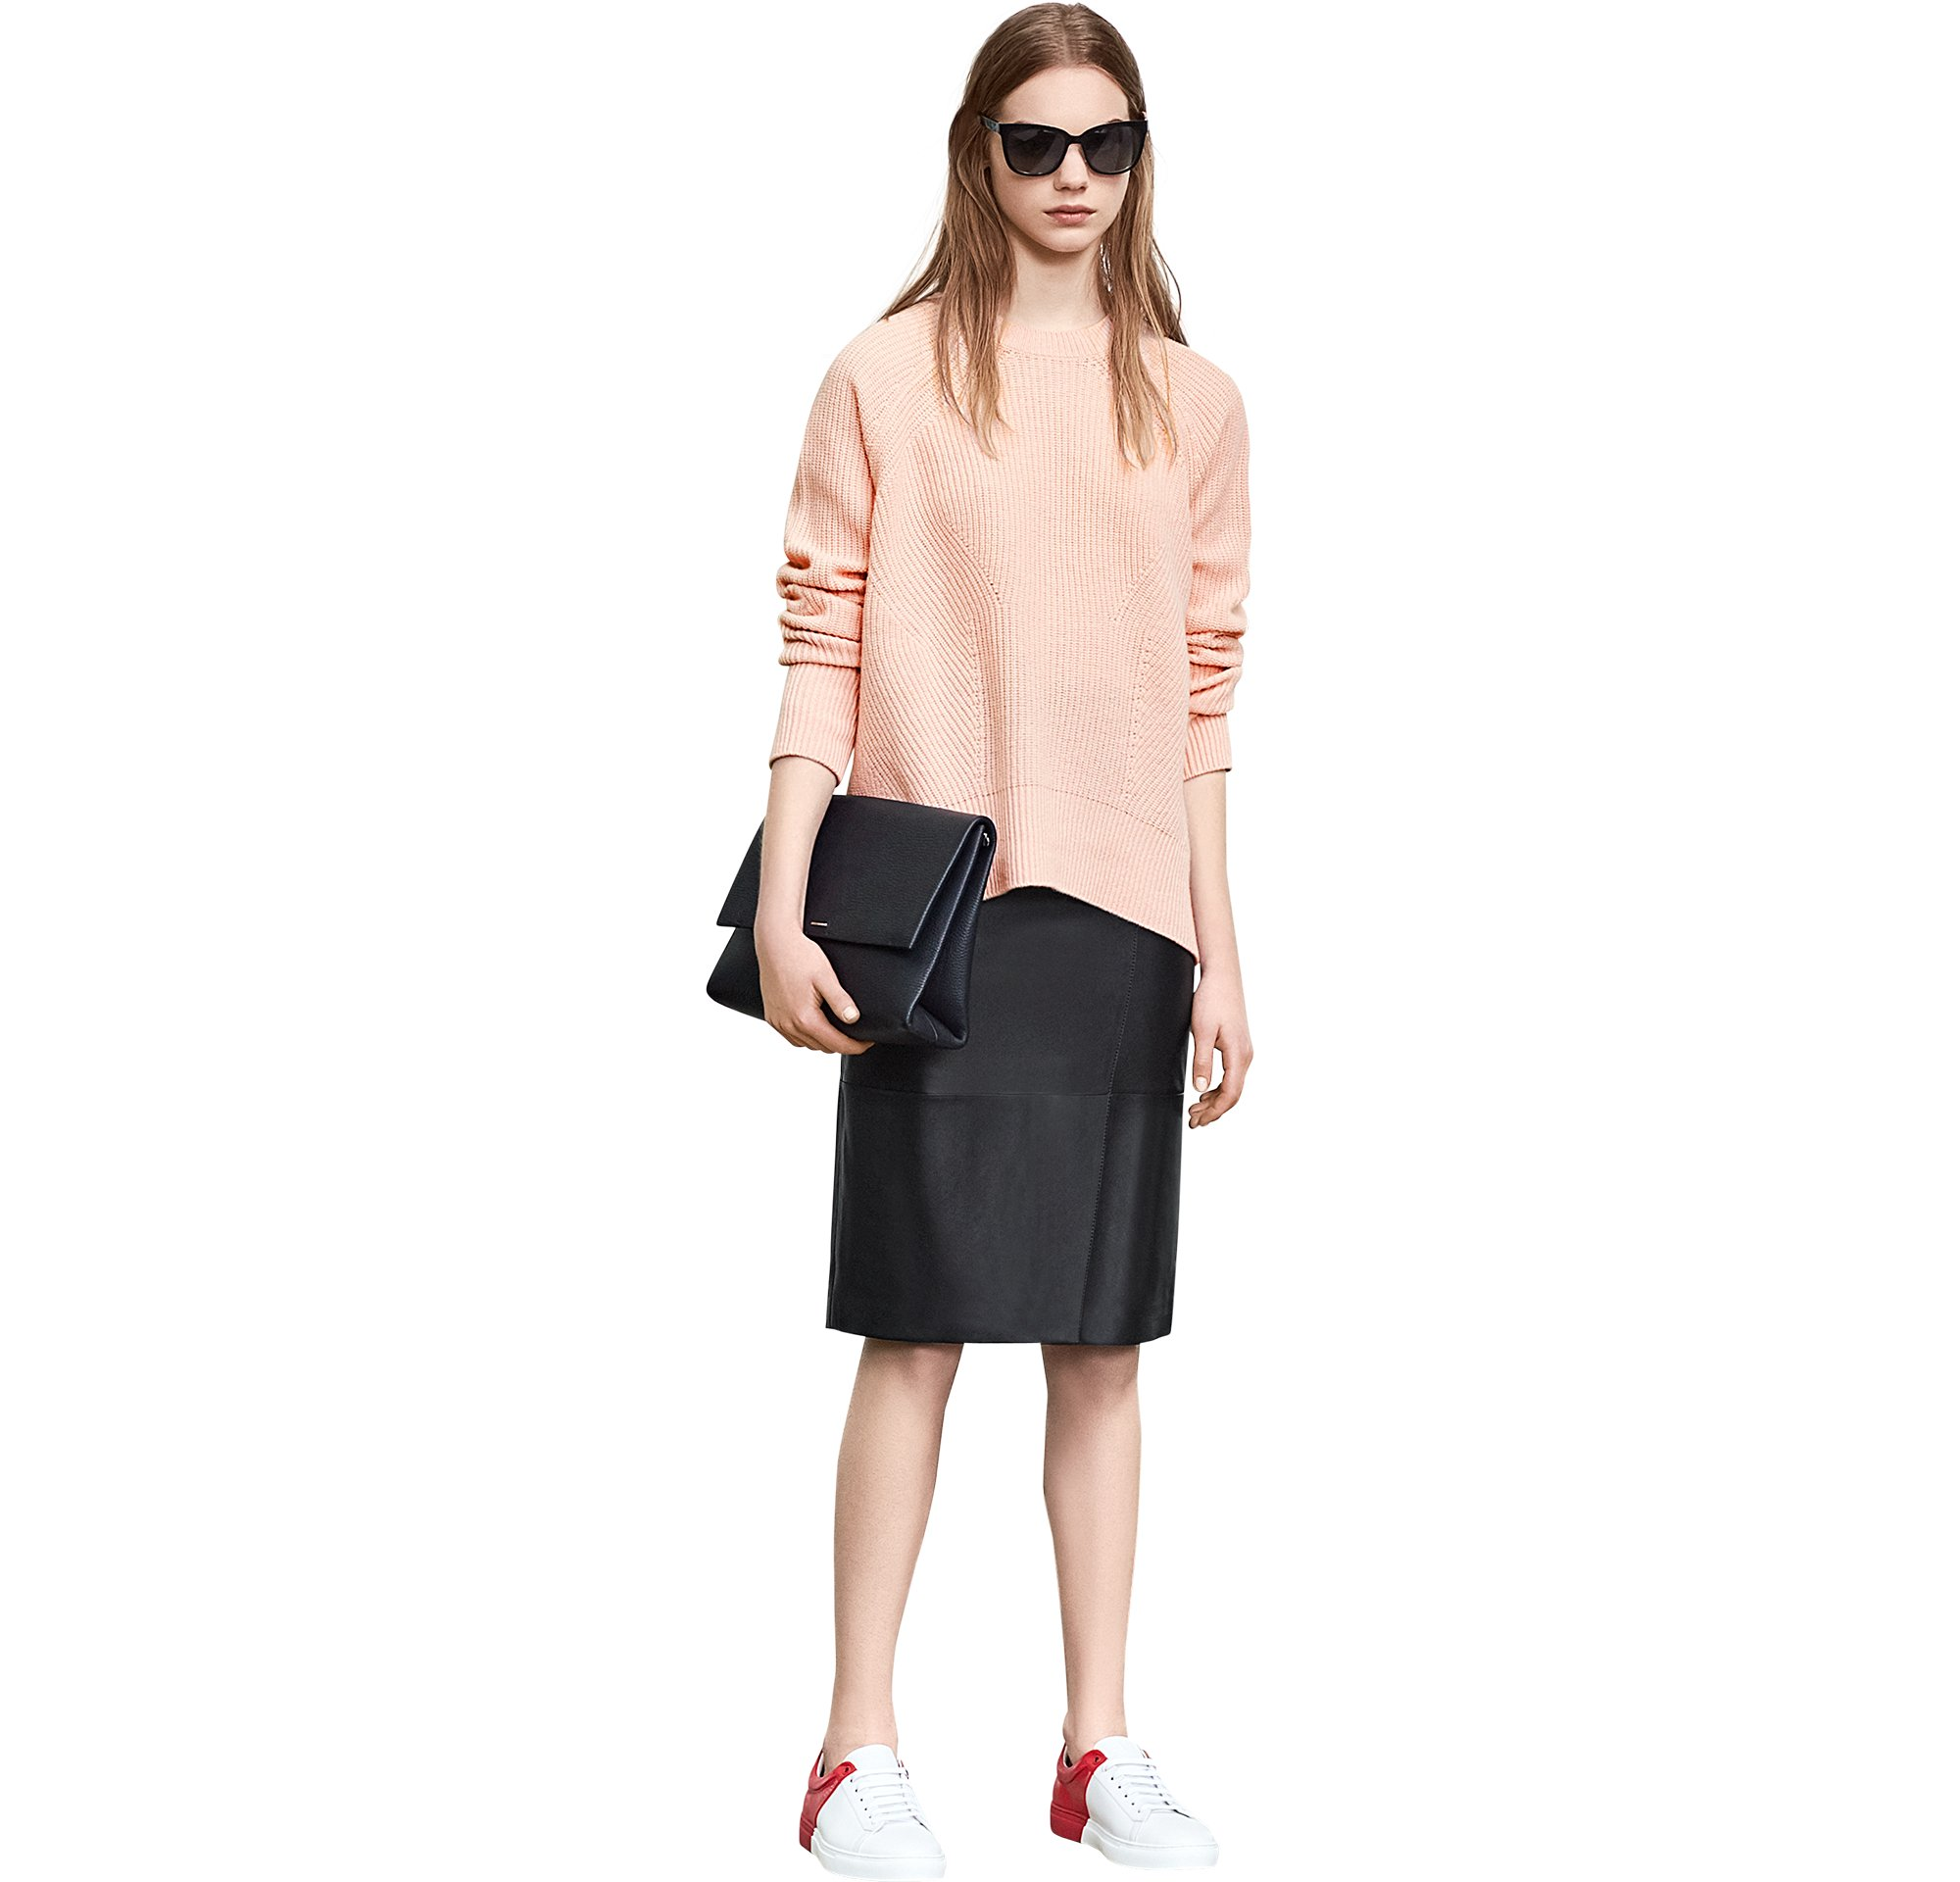 Light pink knitwear over black leather skirt with bag and shoes by BOSS